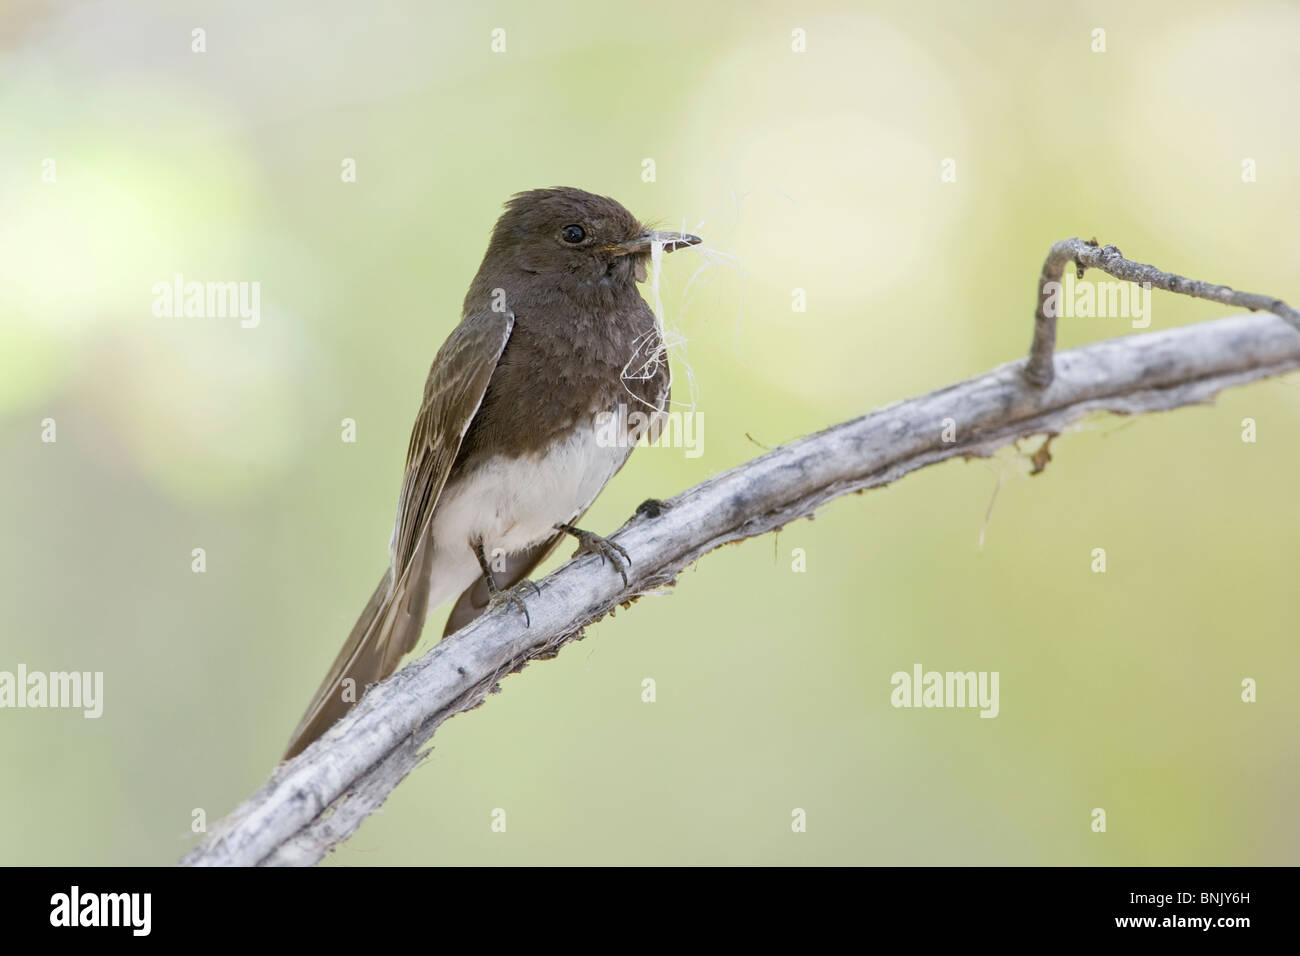 Black Phoebe with Nest Material - Stock Image